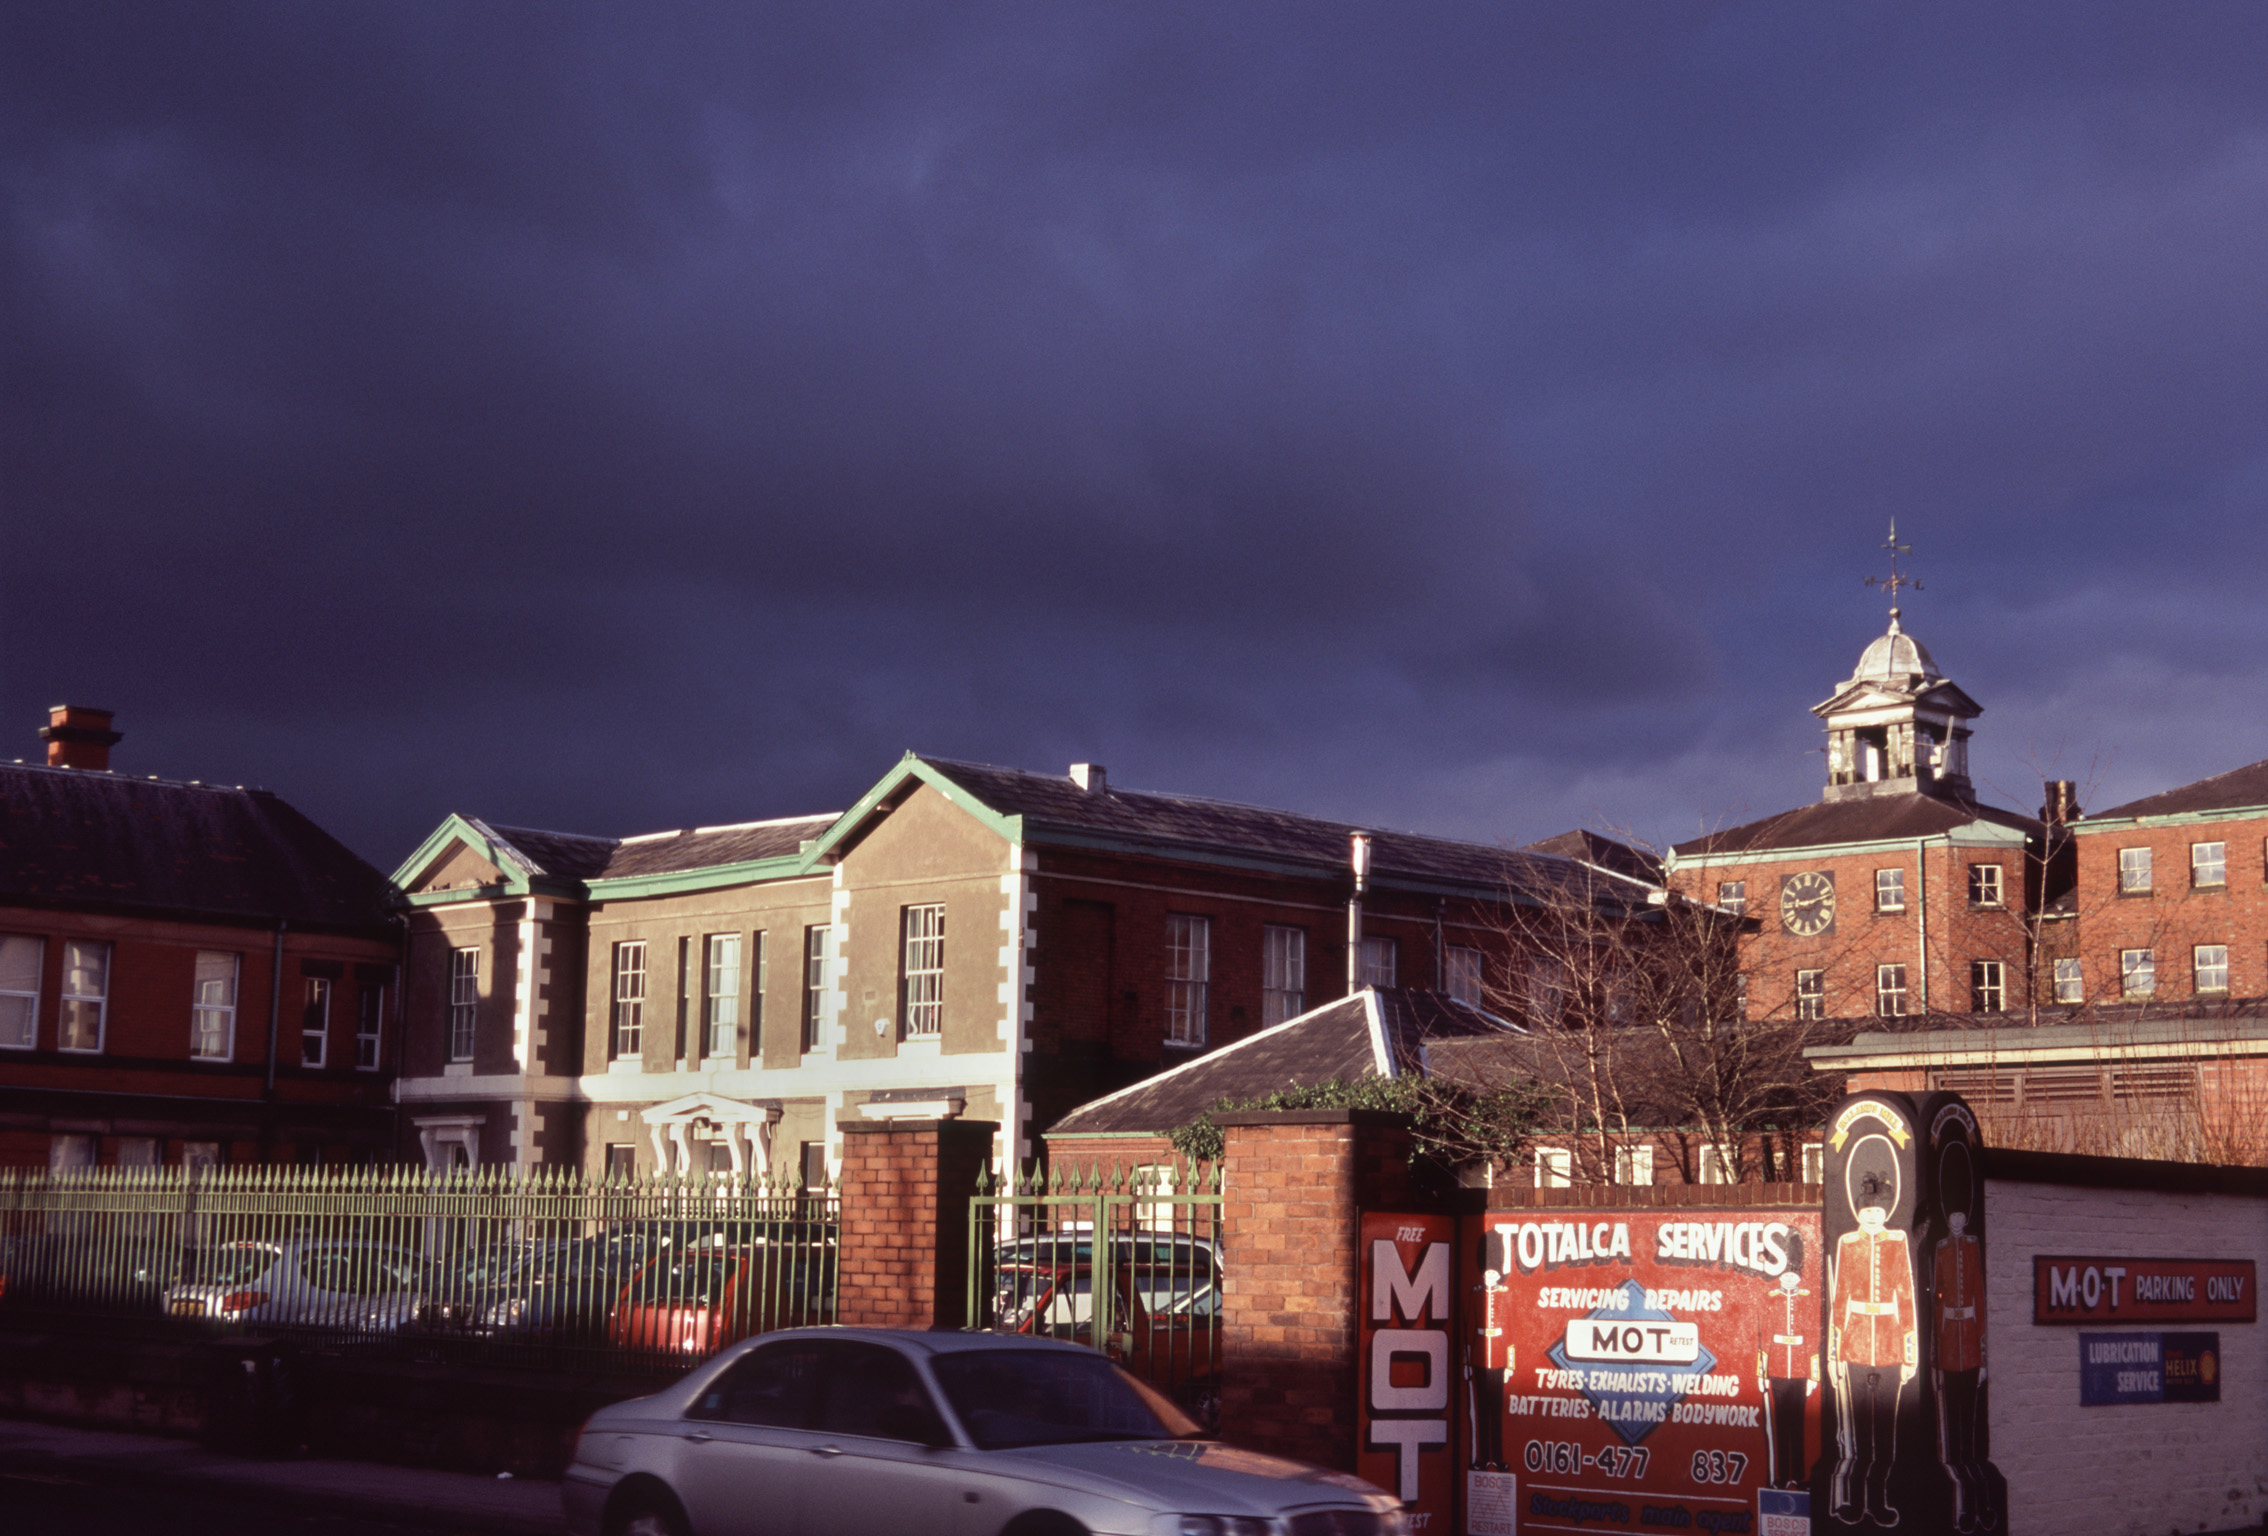 Edgehill Hospital, Stockport on a dark in dramatic lighting on a stormy day with threatening cloud cover